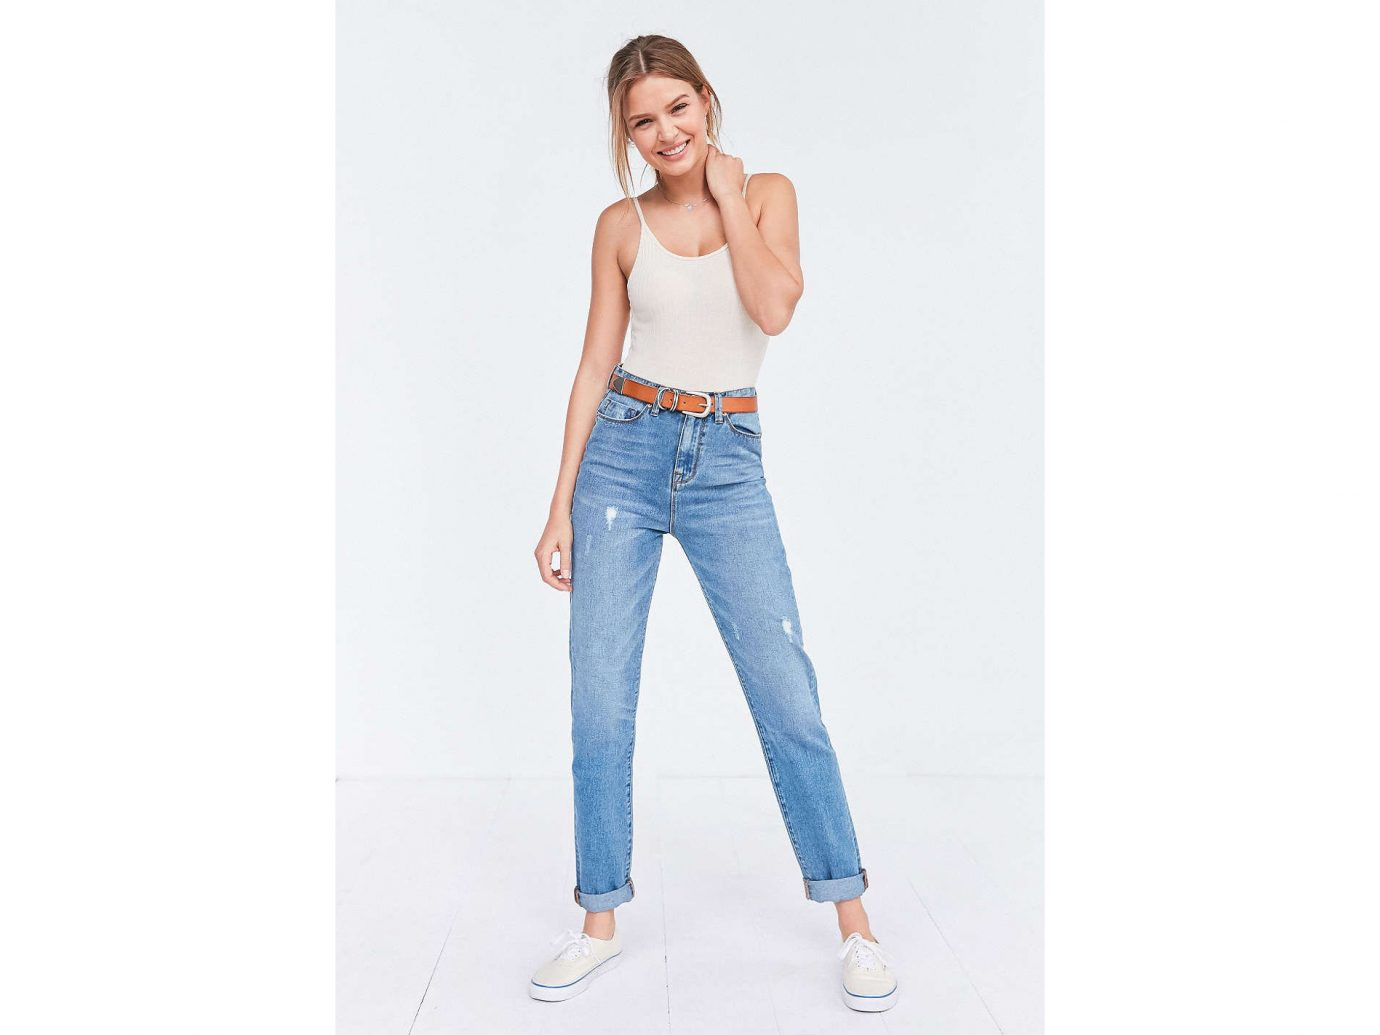 Style + Design clothing jeans denim person phone cellphone shoulder waist standing fashion model trousers joint abdomen one piece garment neck trunk trouser electric blue